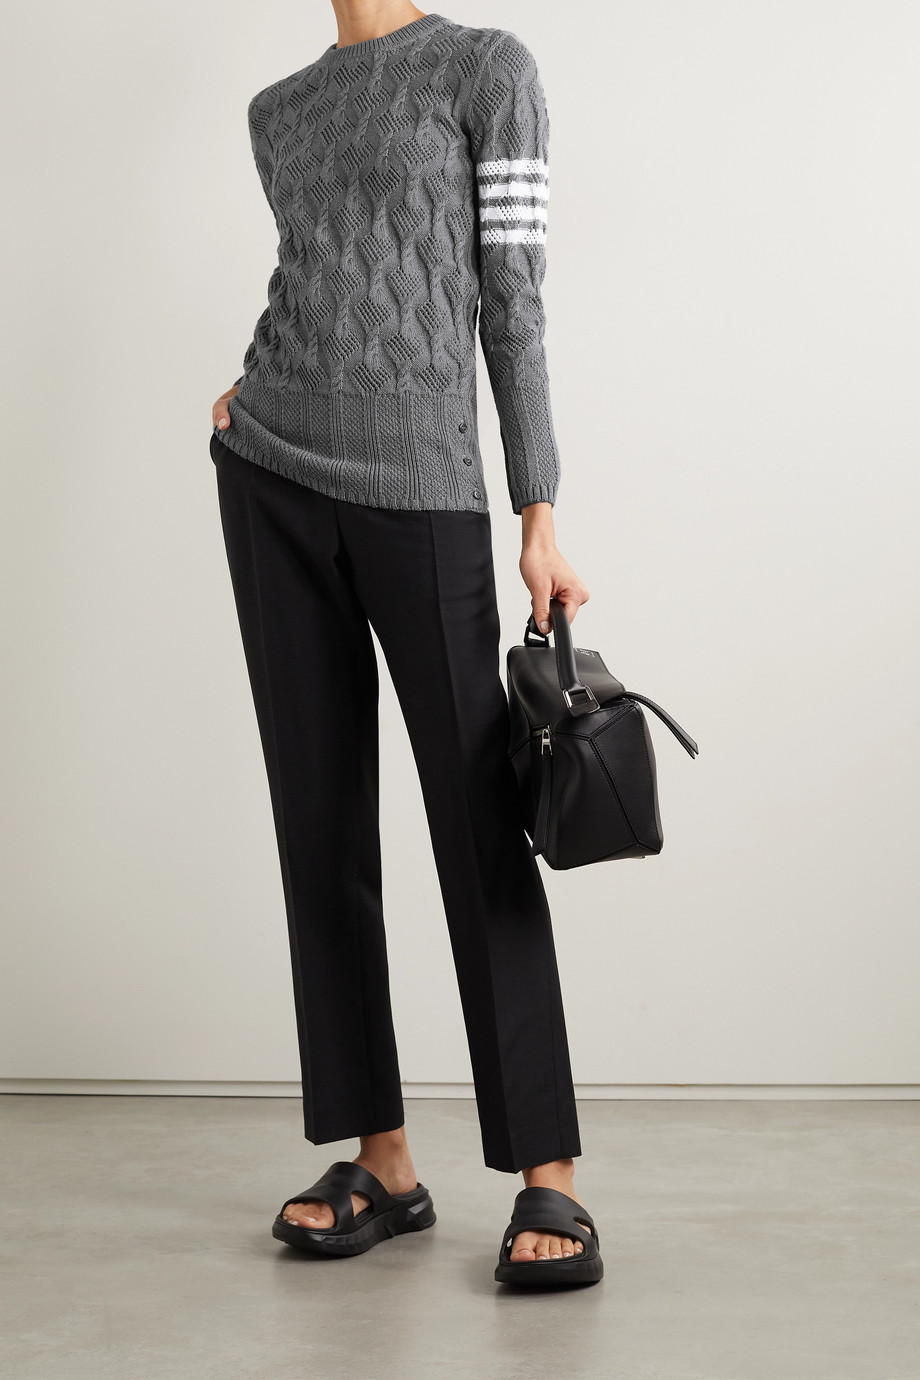 Thom Browne Striped pointelle and cable-knit cotton sweater